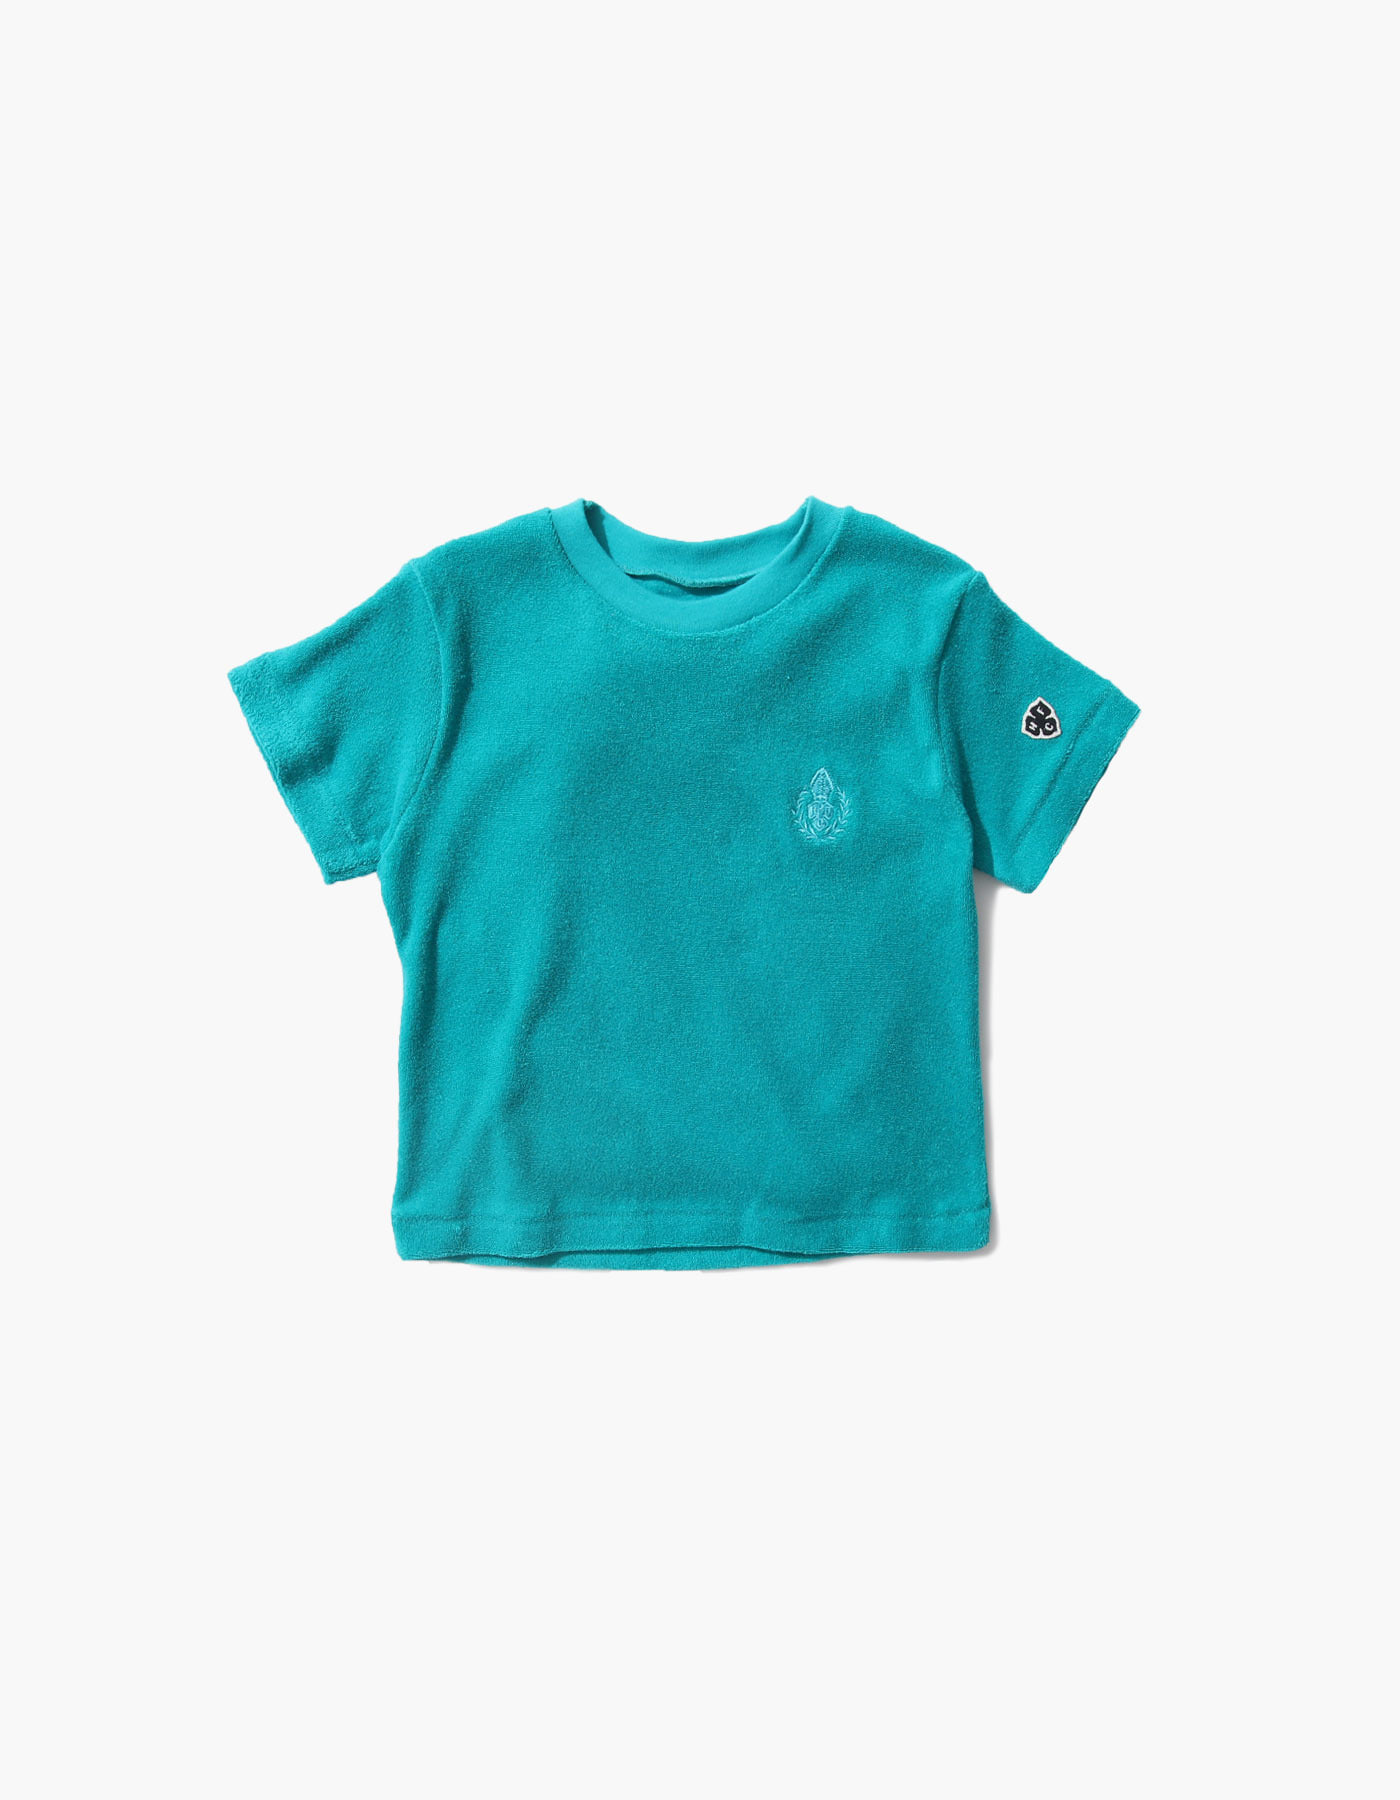 HFC CREST KIDS TOWEL T-SHIRTS / BLUE GREEN